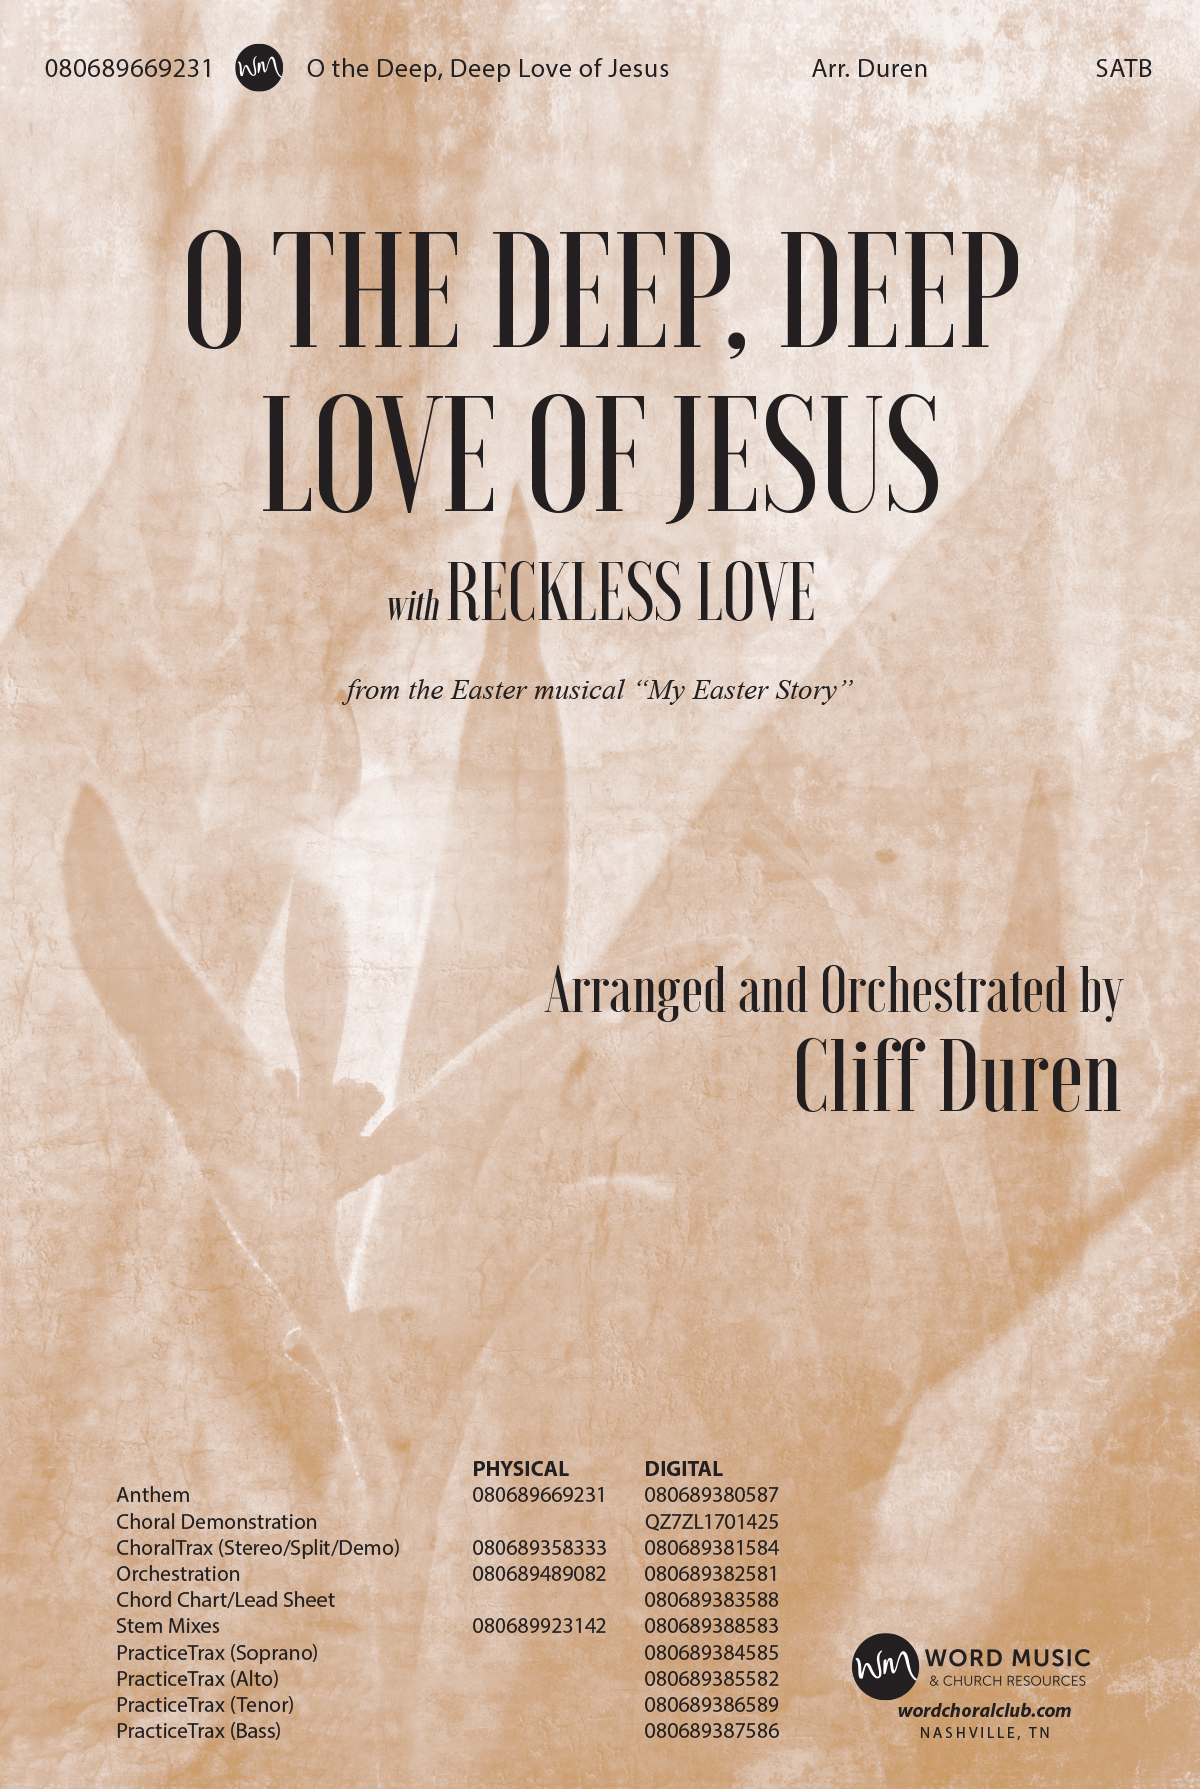 O the Deep, Deep Love of Jesus with Reckless Love